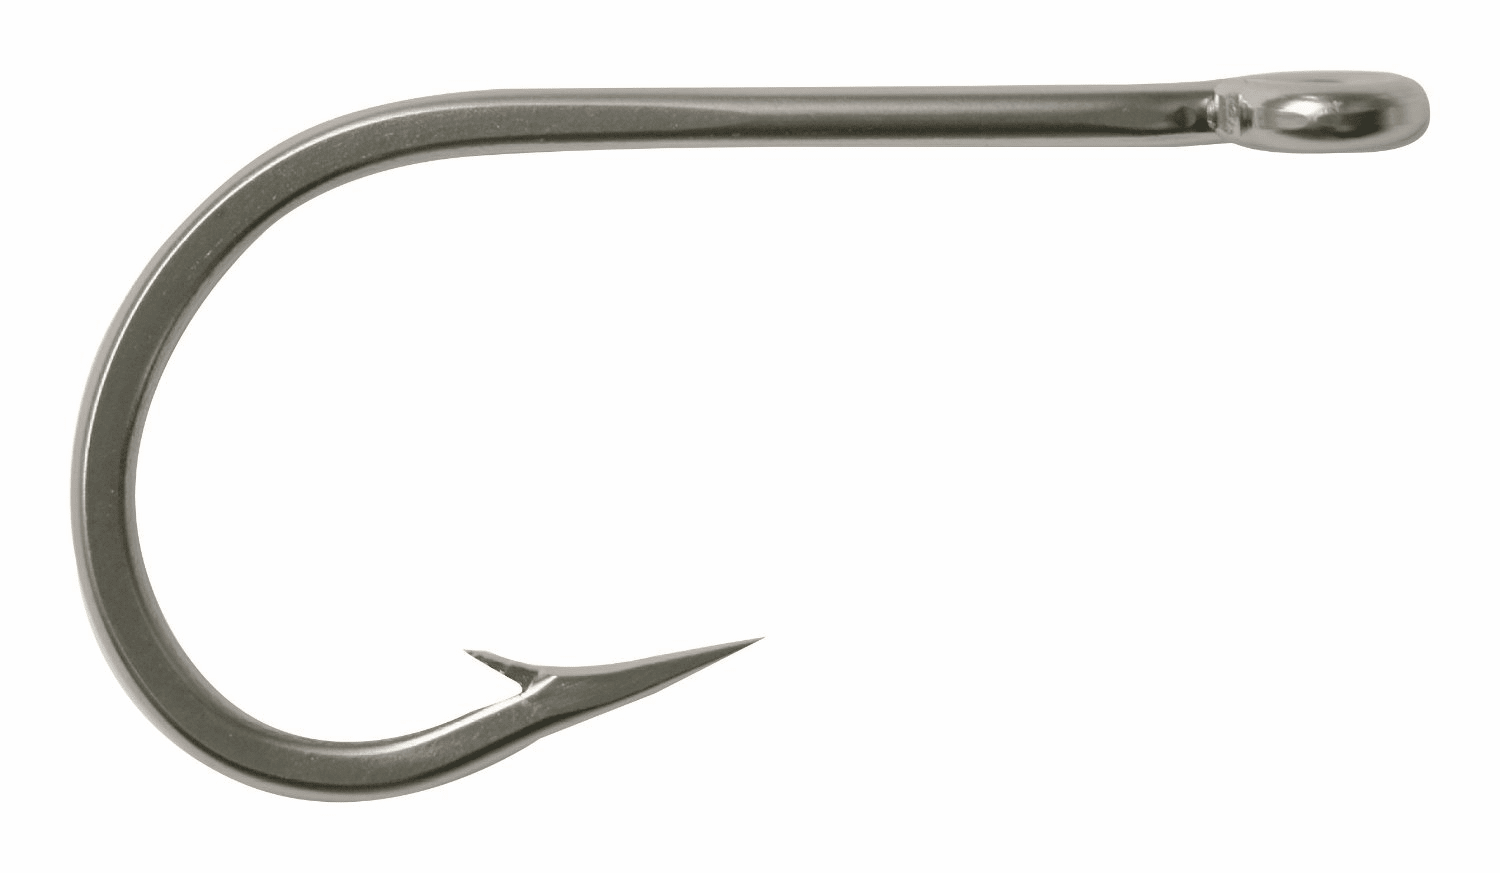 Stainless Steel Trolling Tuna Hooks- Model 7691S - 8/0 - 25 pcs